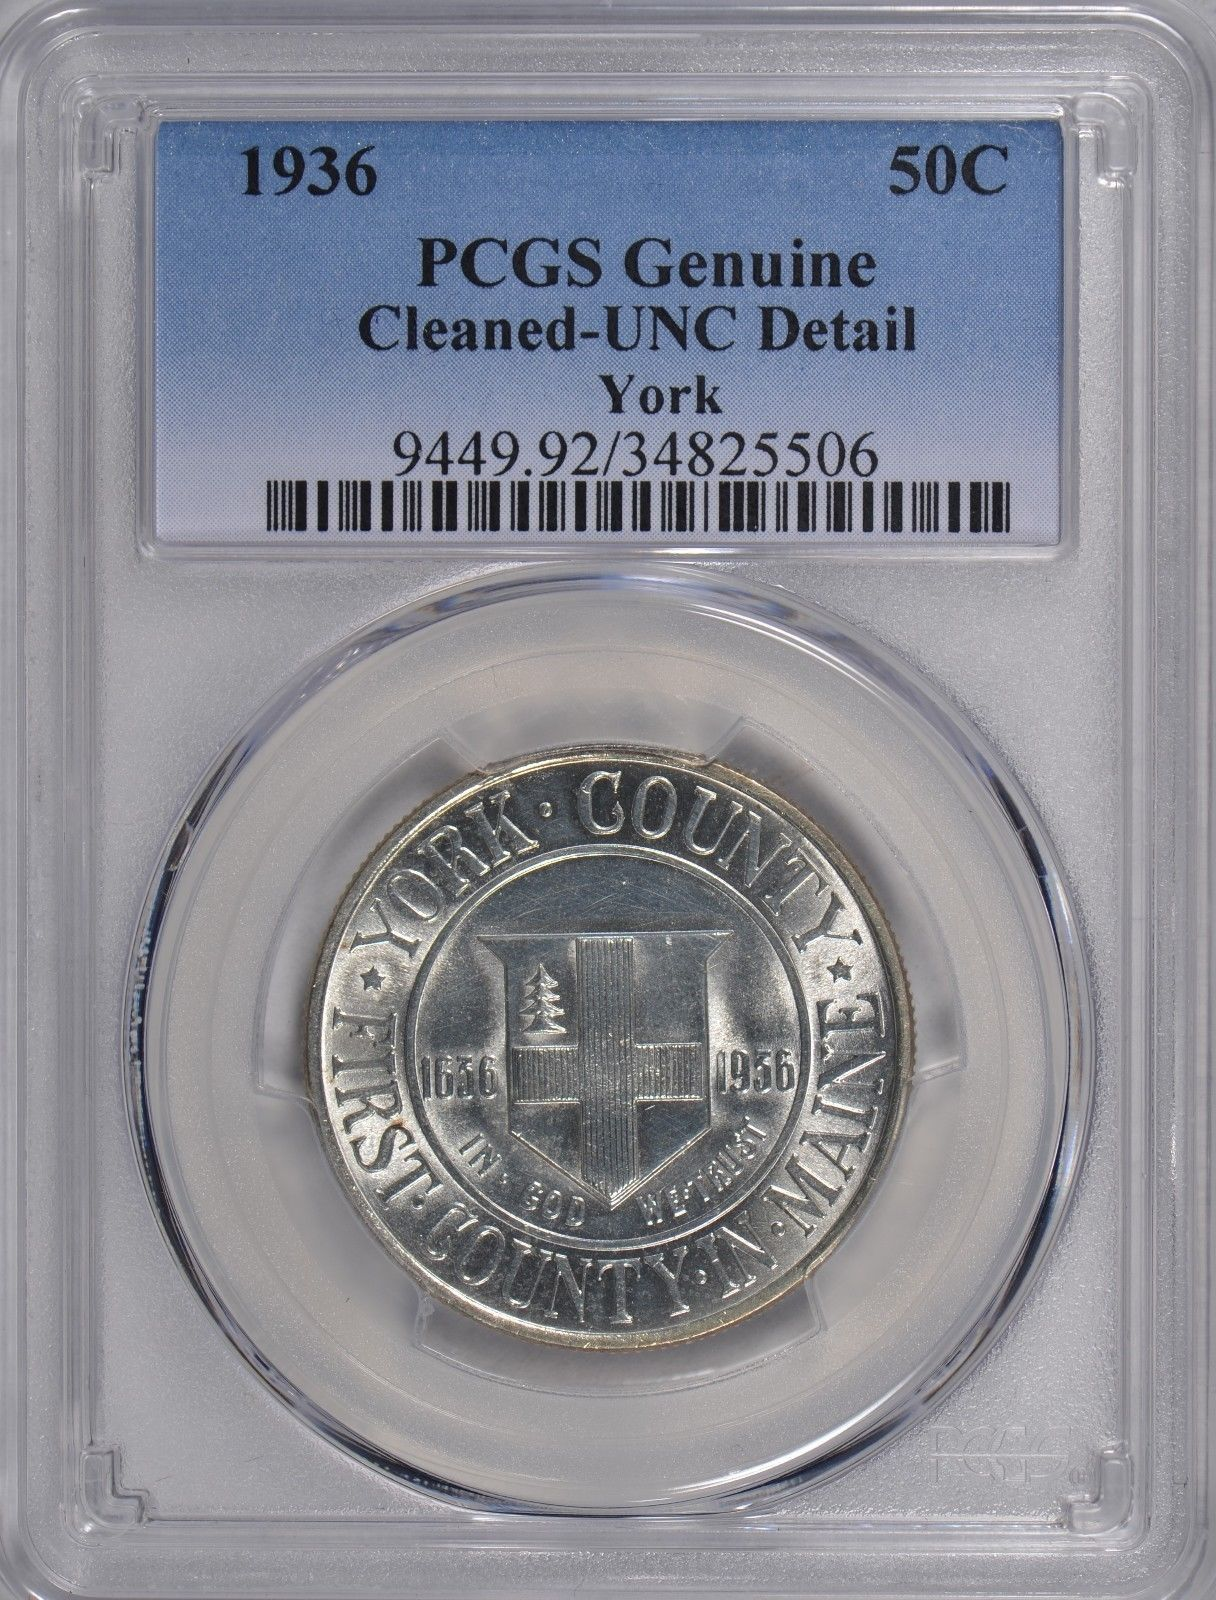 1936 York Silver Commemorative Half Dollar PCGS Genuine Cleaned